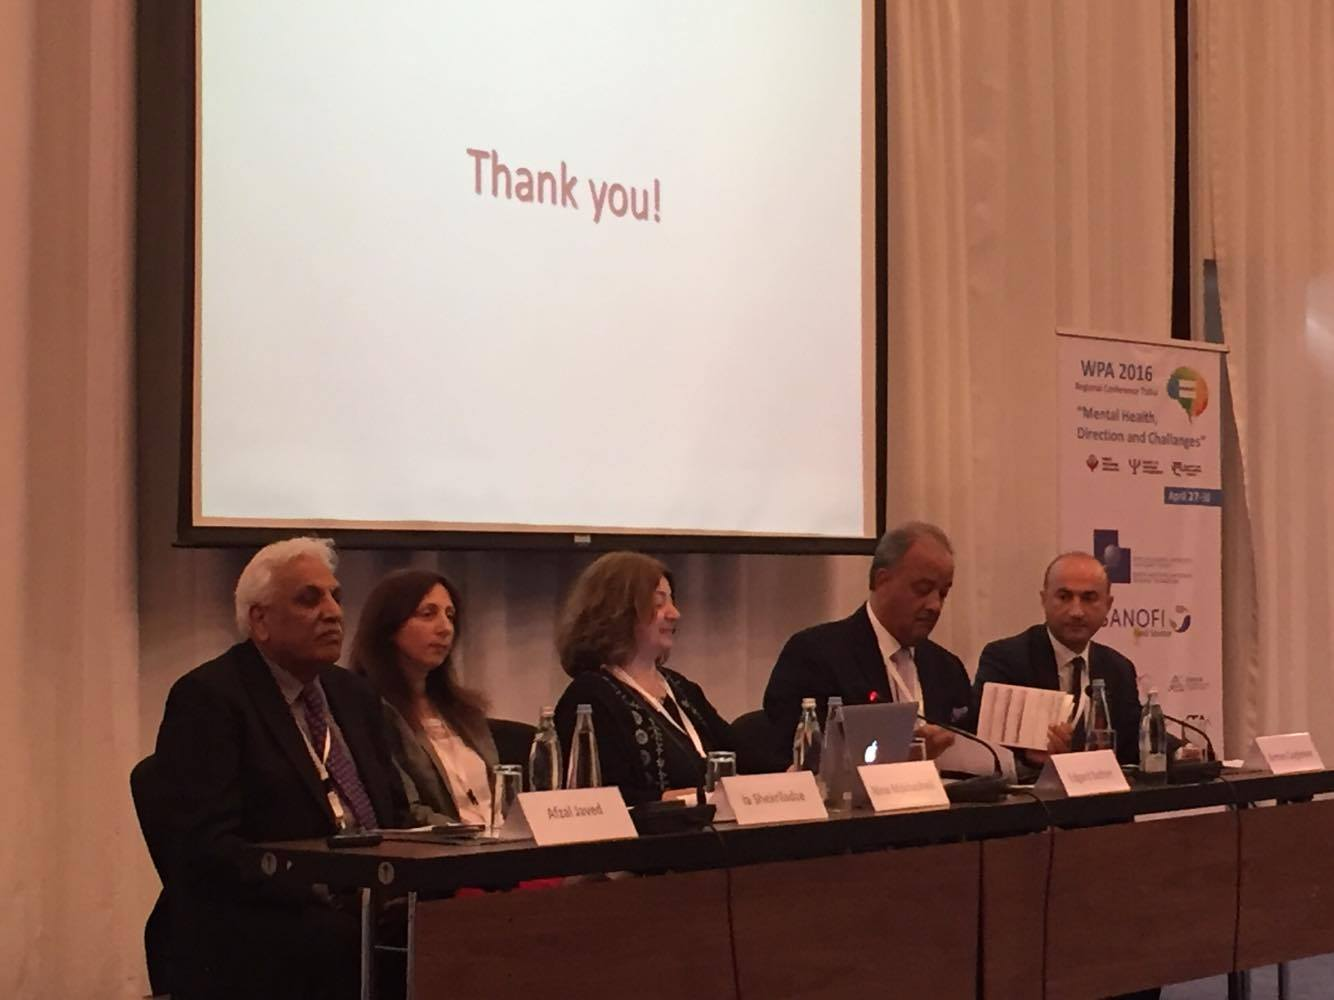 FAVL's Specialists Participated in Regional congress of World Psychiatric Association (WPA)